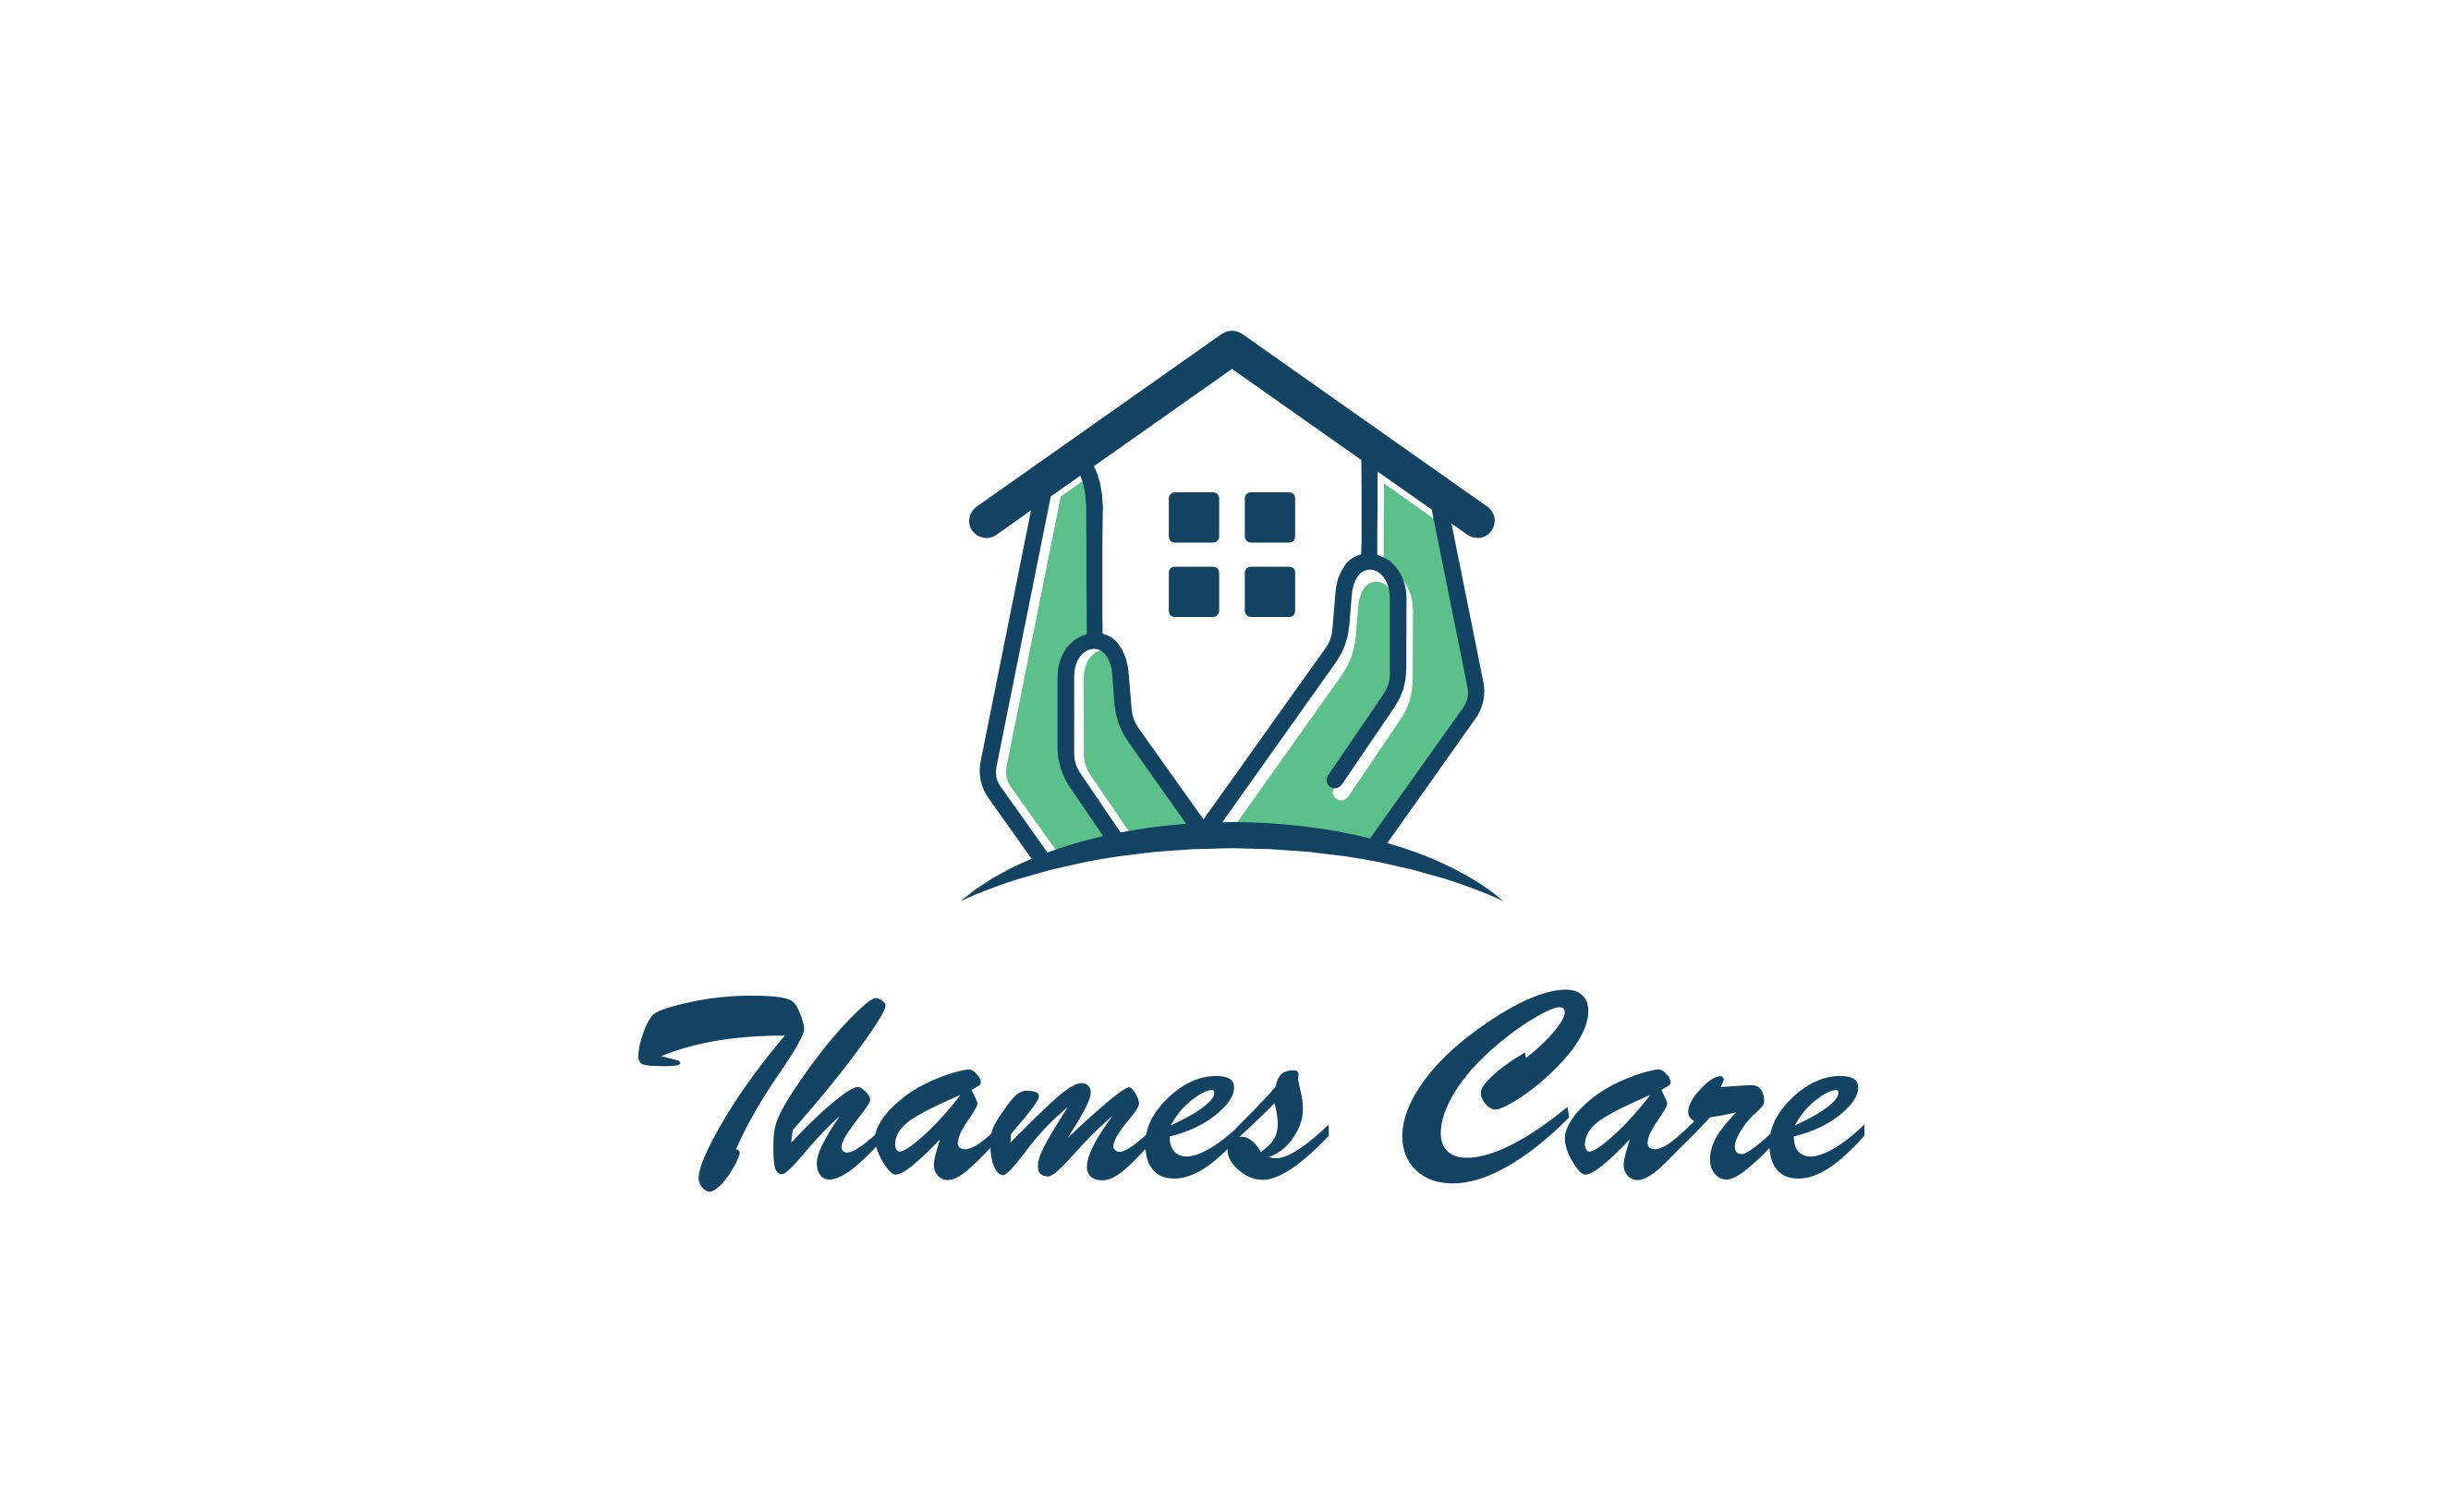 Thames Care